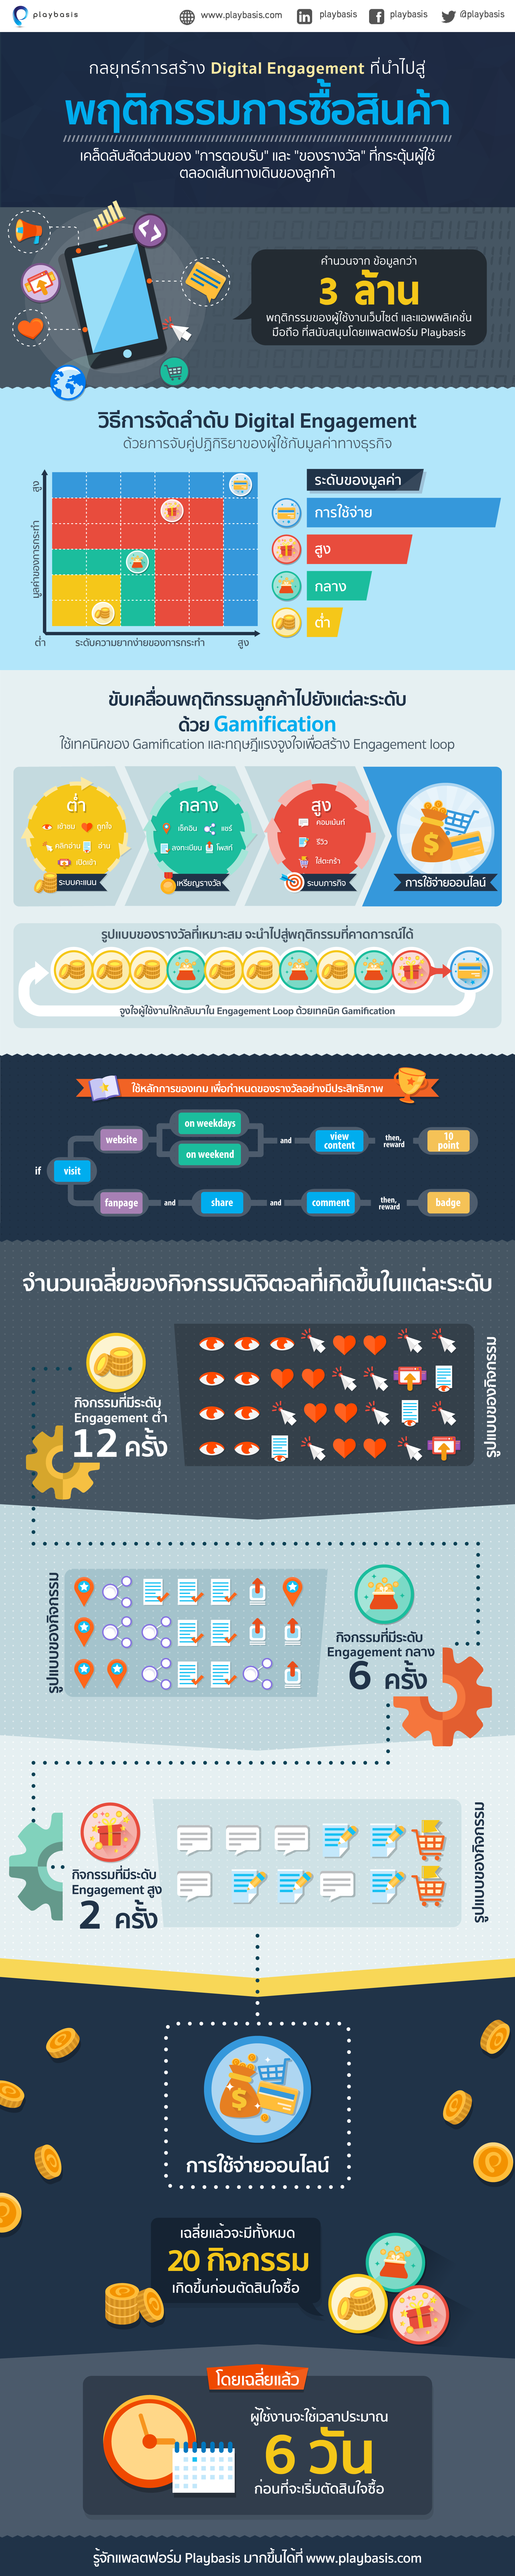 PlayBasis_Infographic_TH